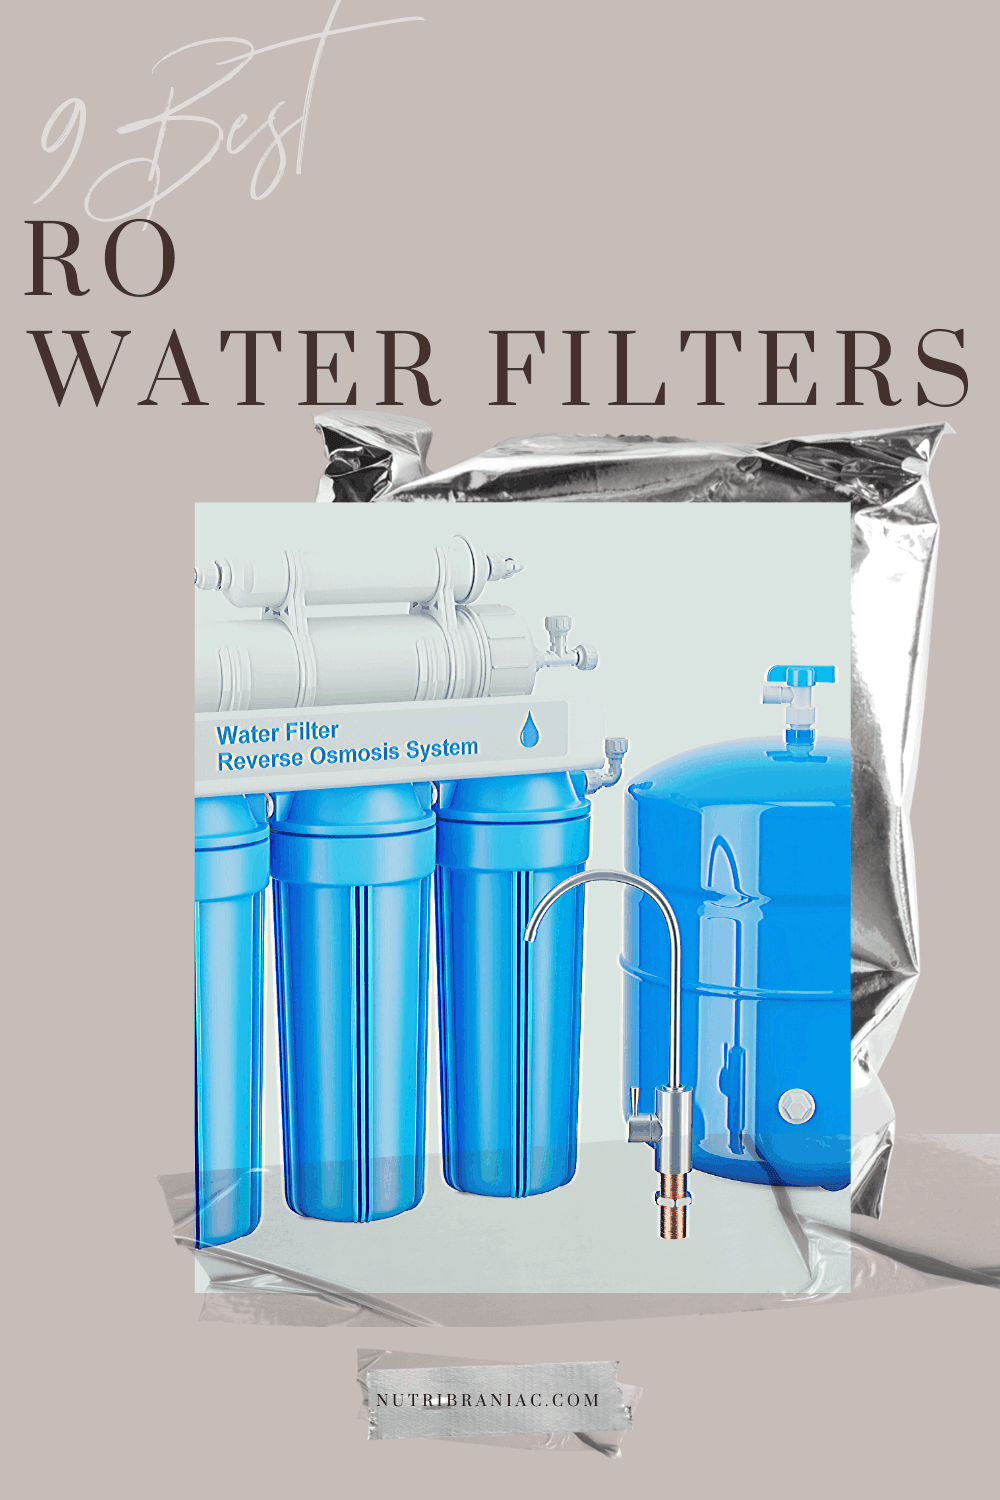 """photograph of a blue reverse osmosis water filter system with text overlay, """"9 Best RO Water Filters"""""""